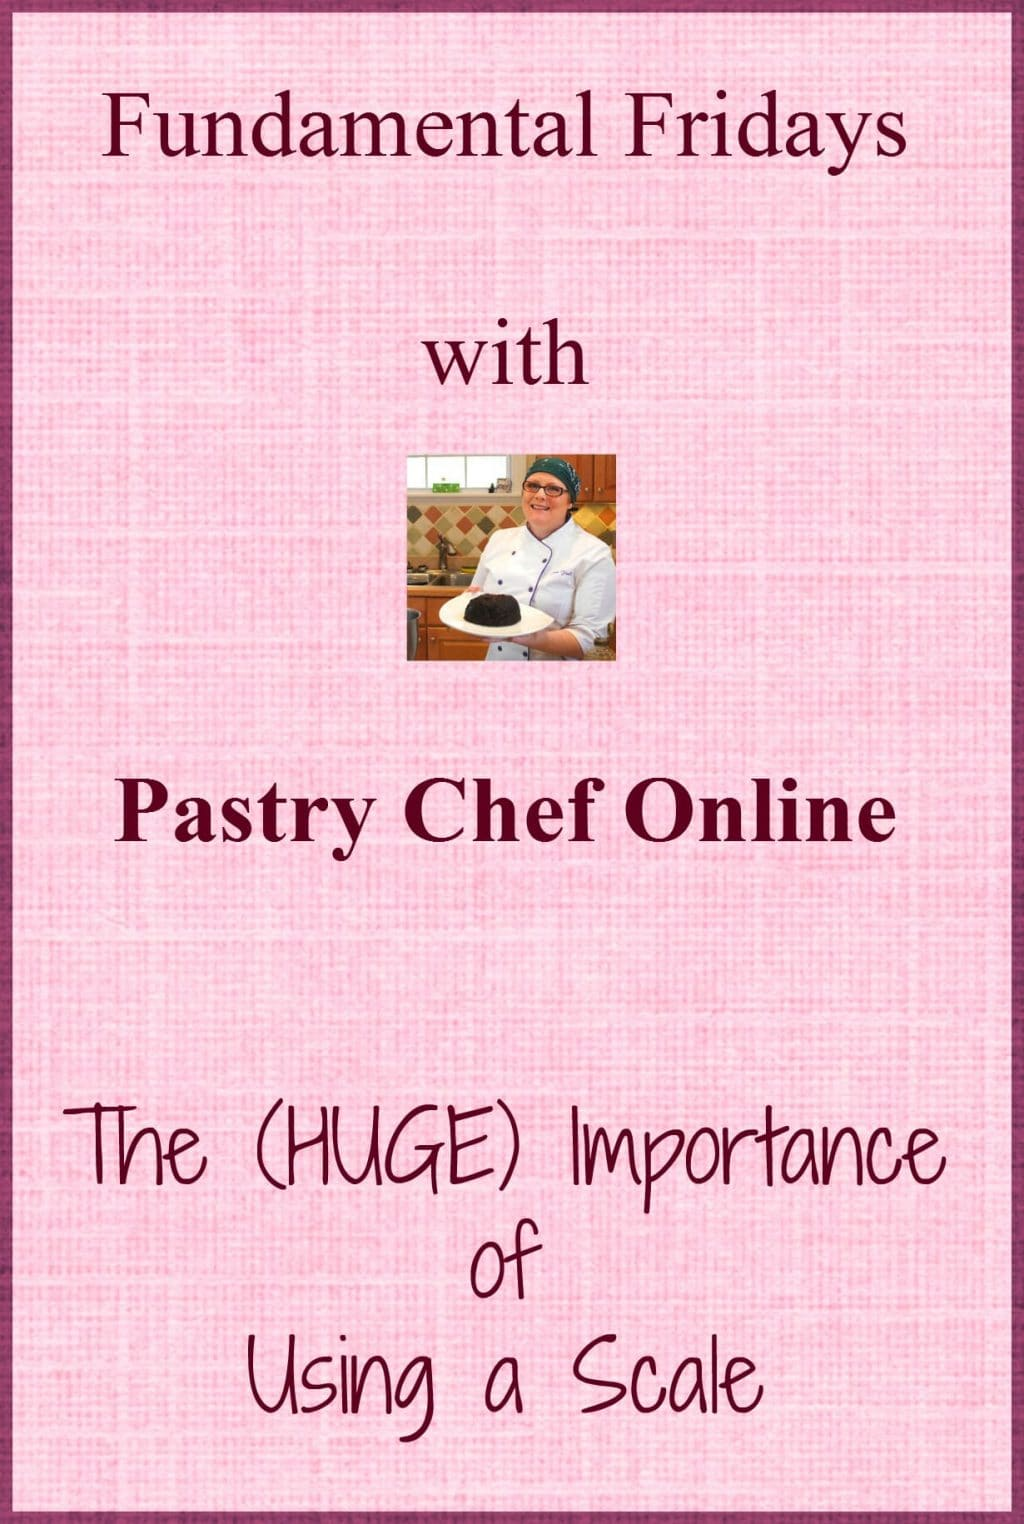 """A pink background with a picture of a chef. Text reads, """"Fundamental Fridays with Pastry Chef Online. The (huge) importance of using a scale."""""""